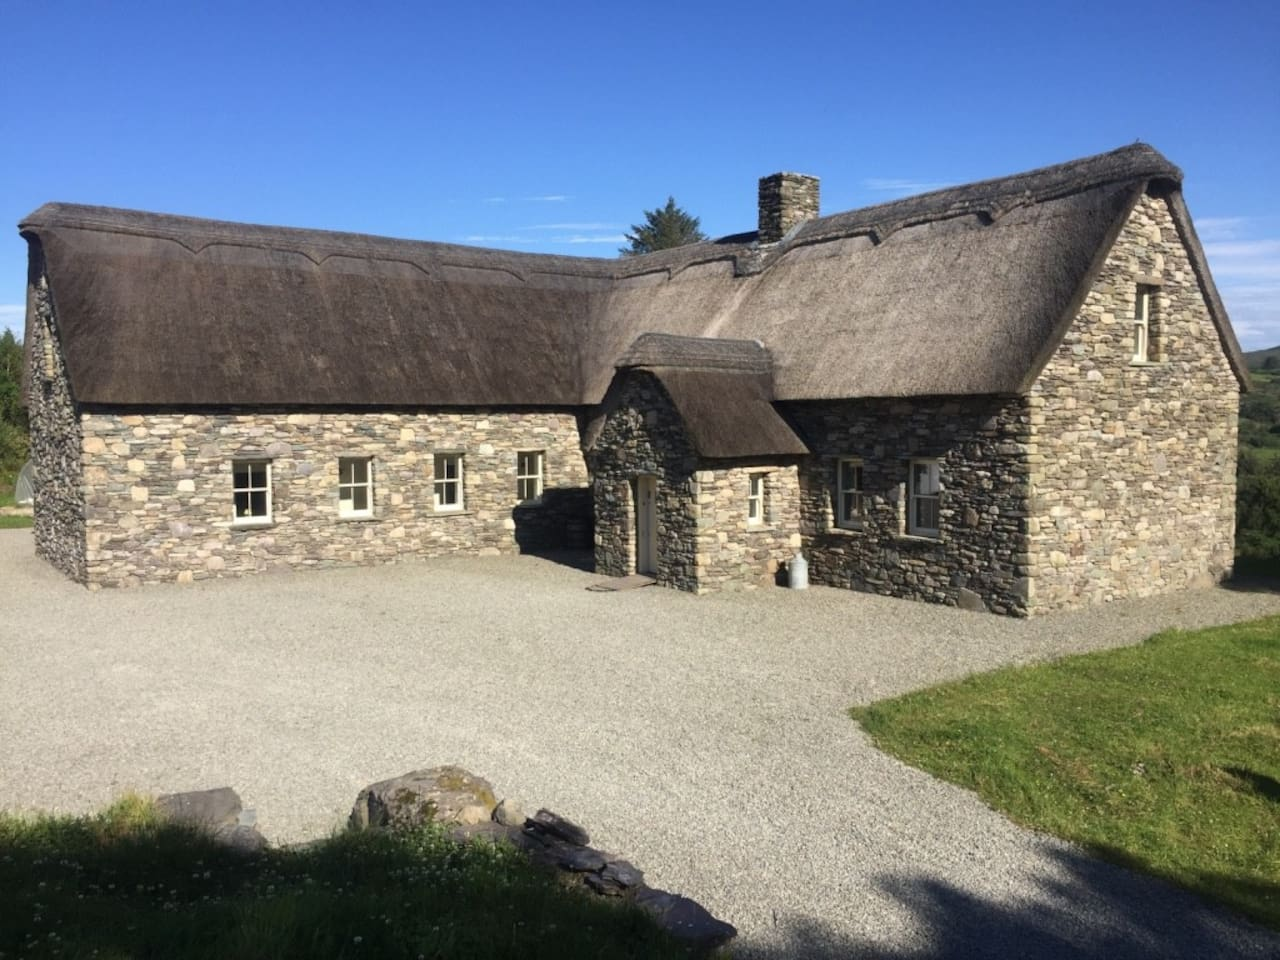 Bluebell Cottage Waterfall House, Dunmanway - potteriespowertransmission.co.uk